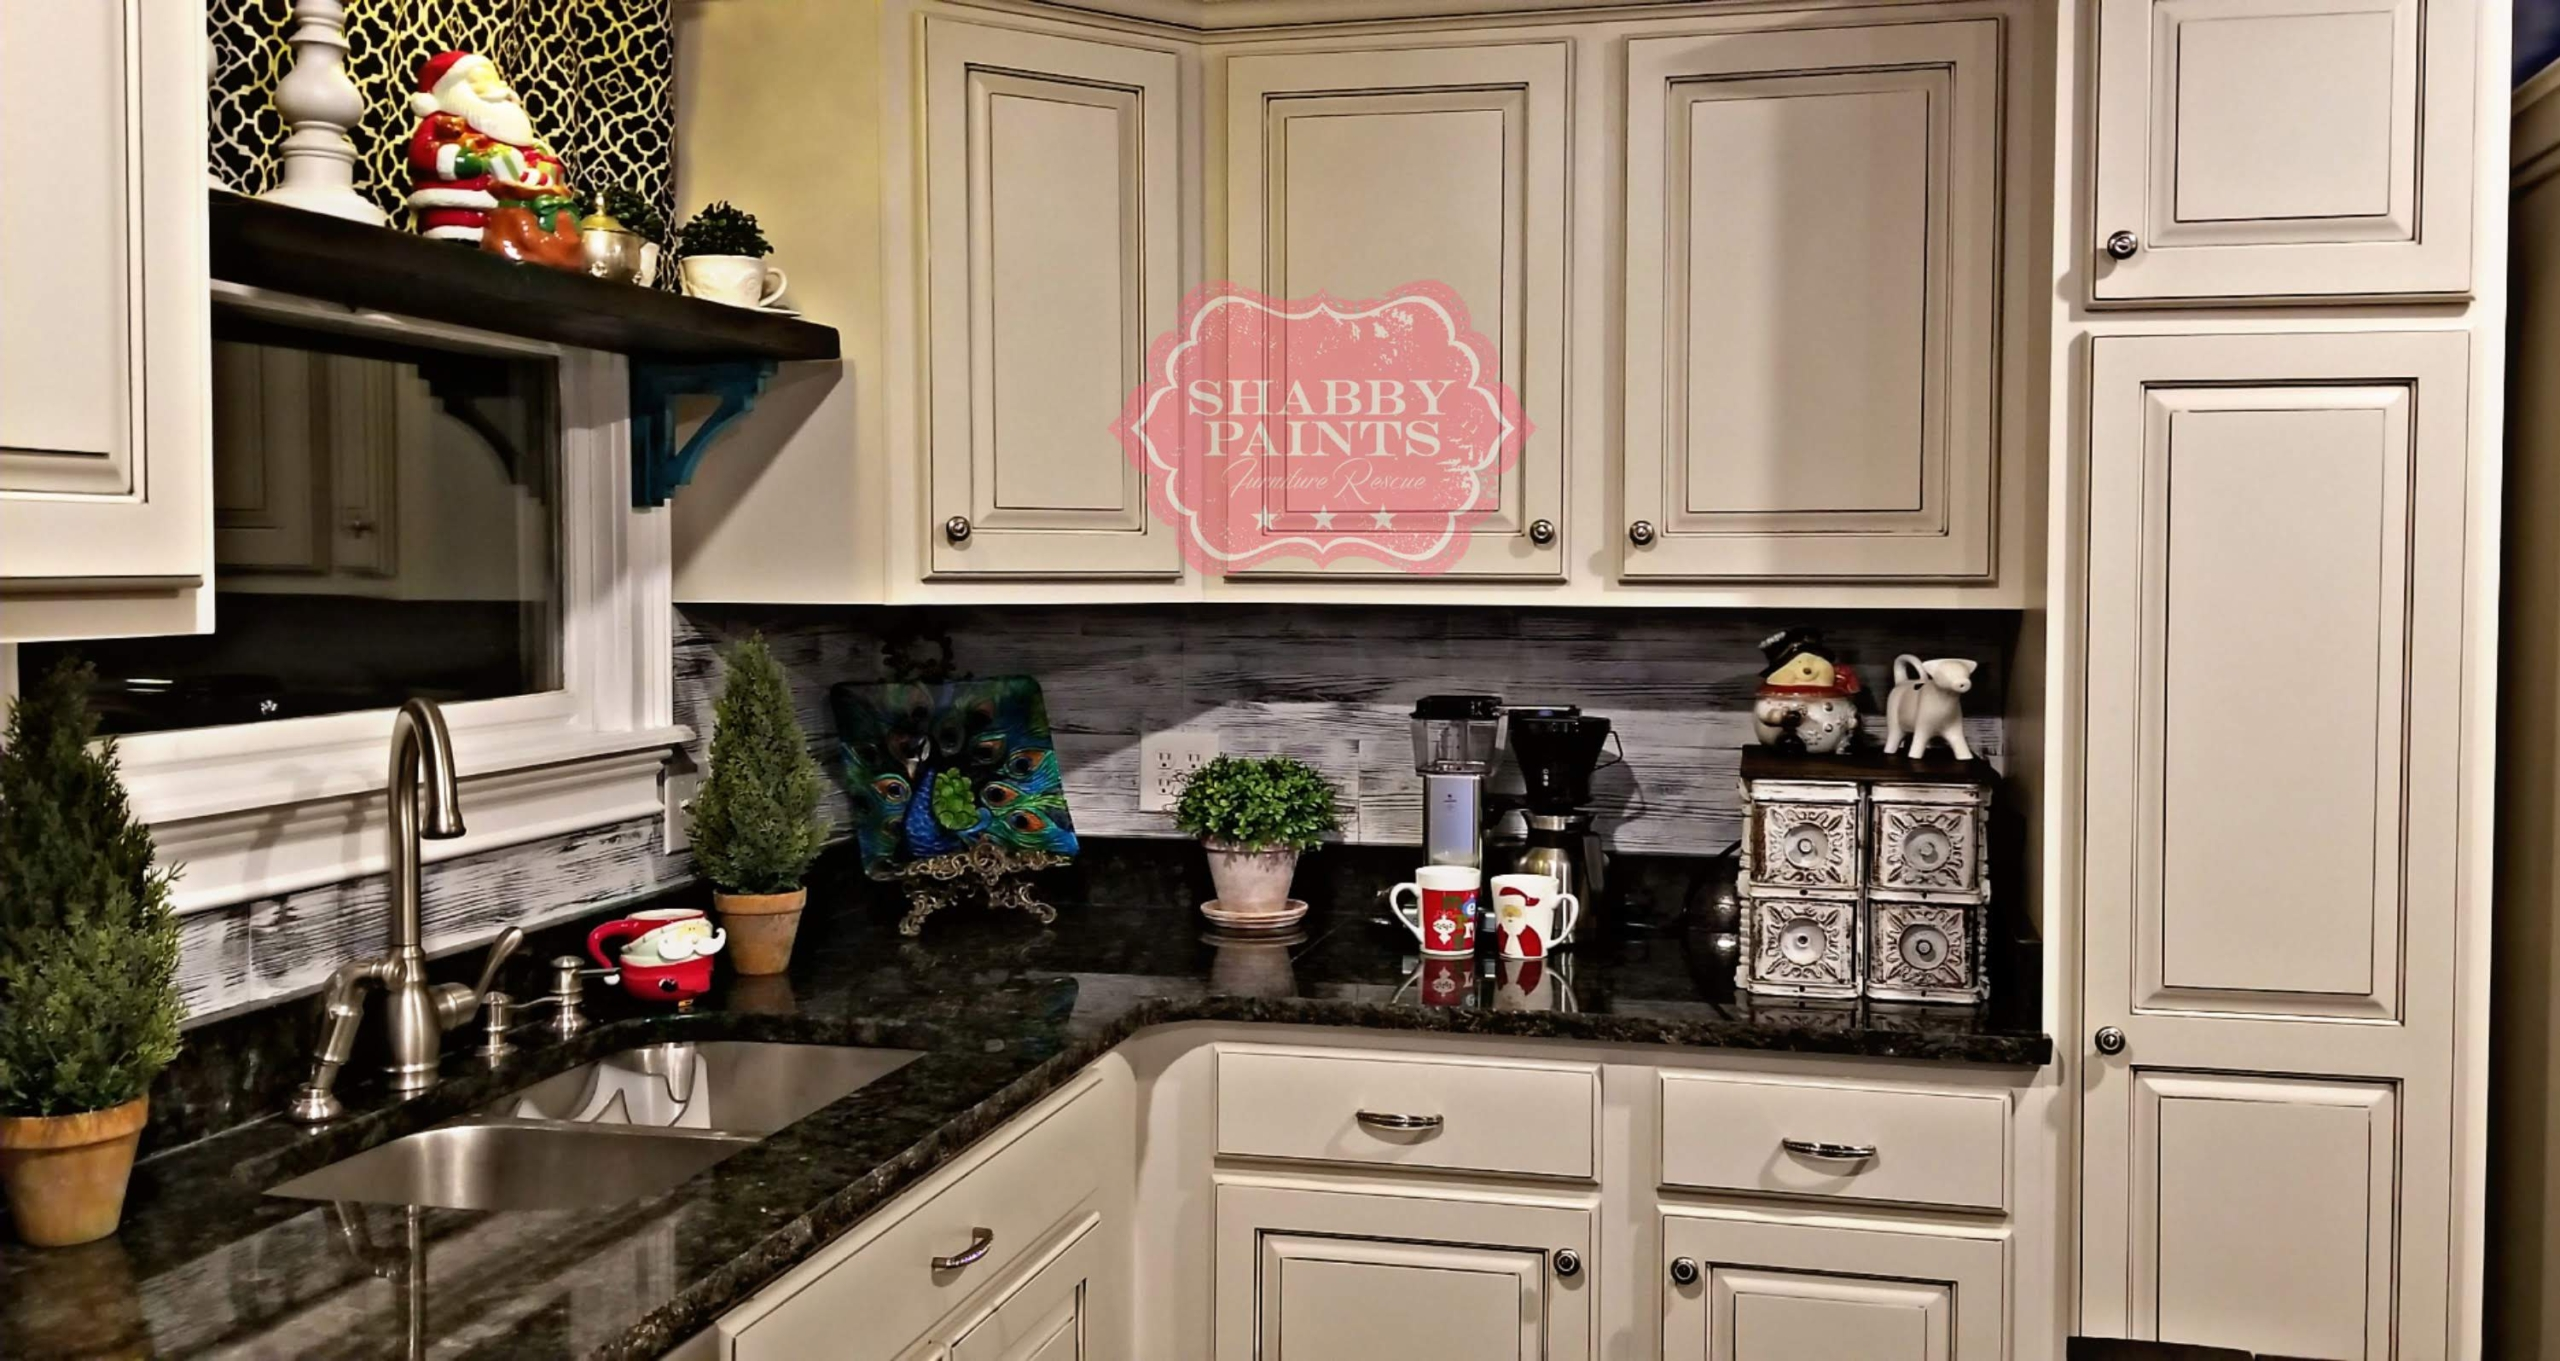 - Kitchen Update On A Budget - Shabby Paints